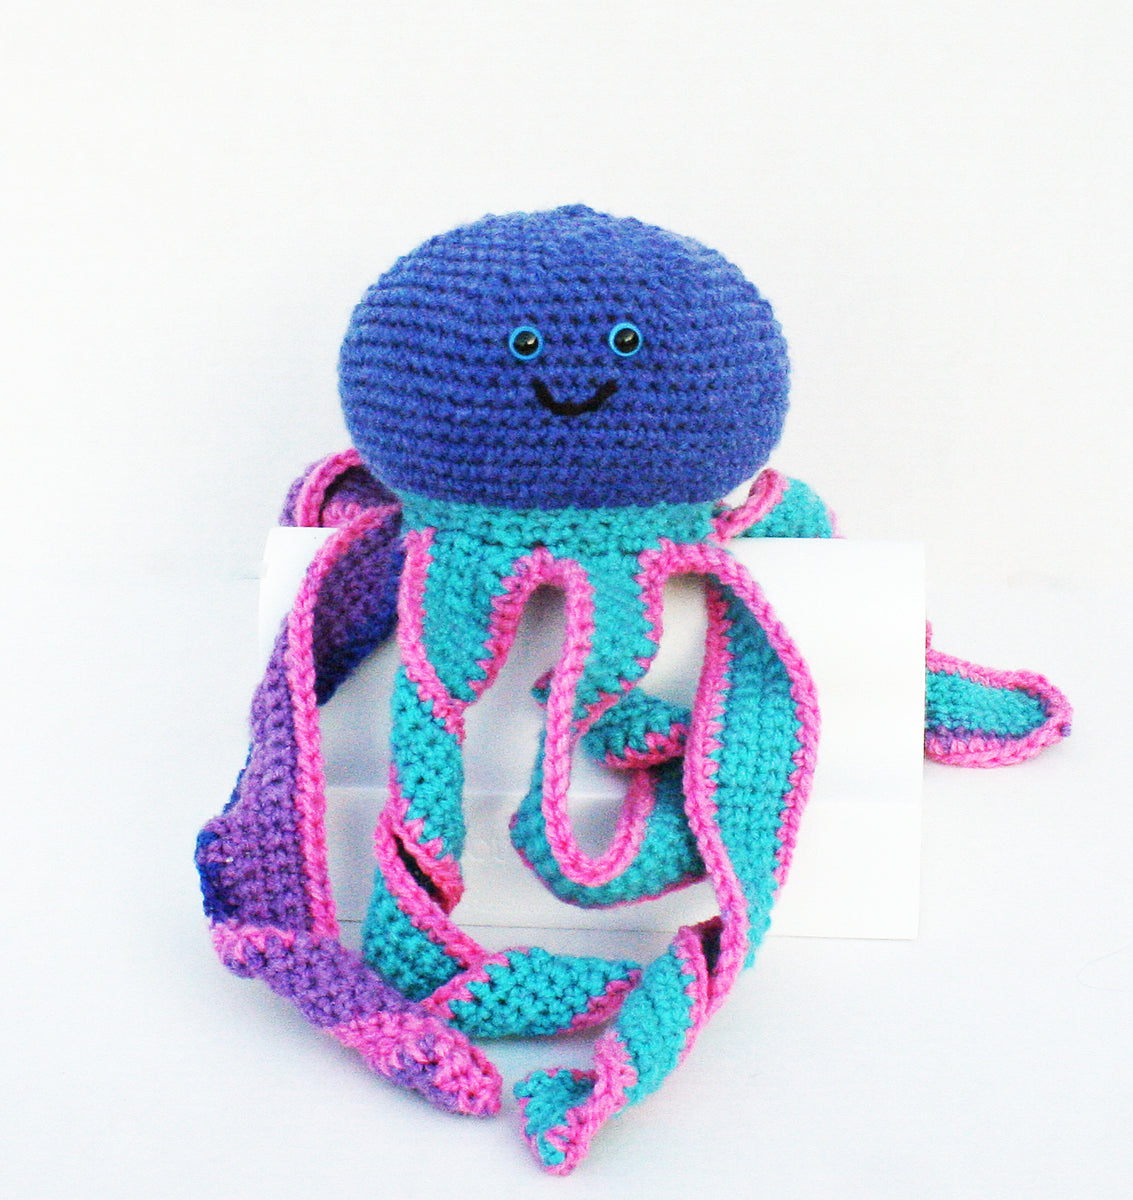 a87c4ecb176 Olive the crocheted Octopus Amigurumi made by Hooktopi